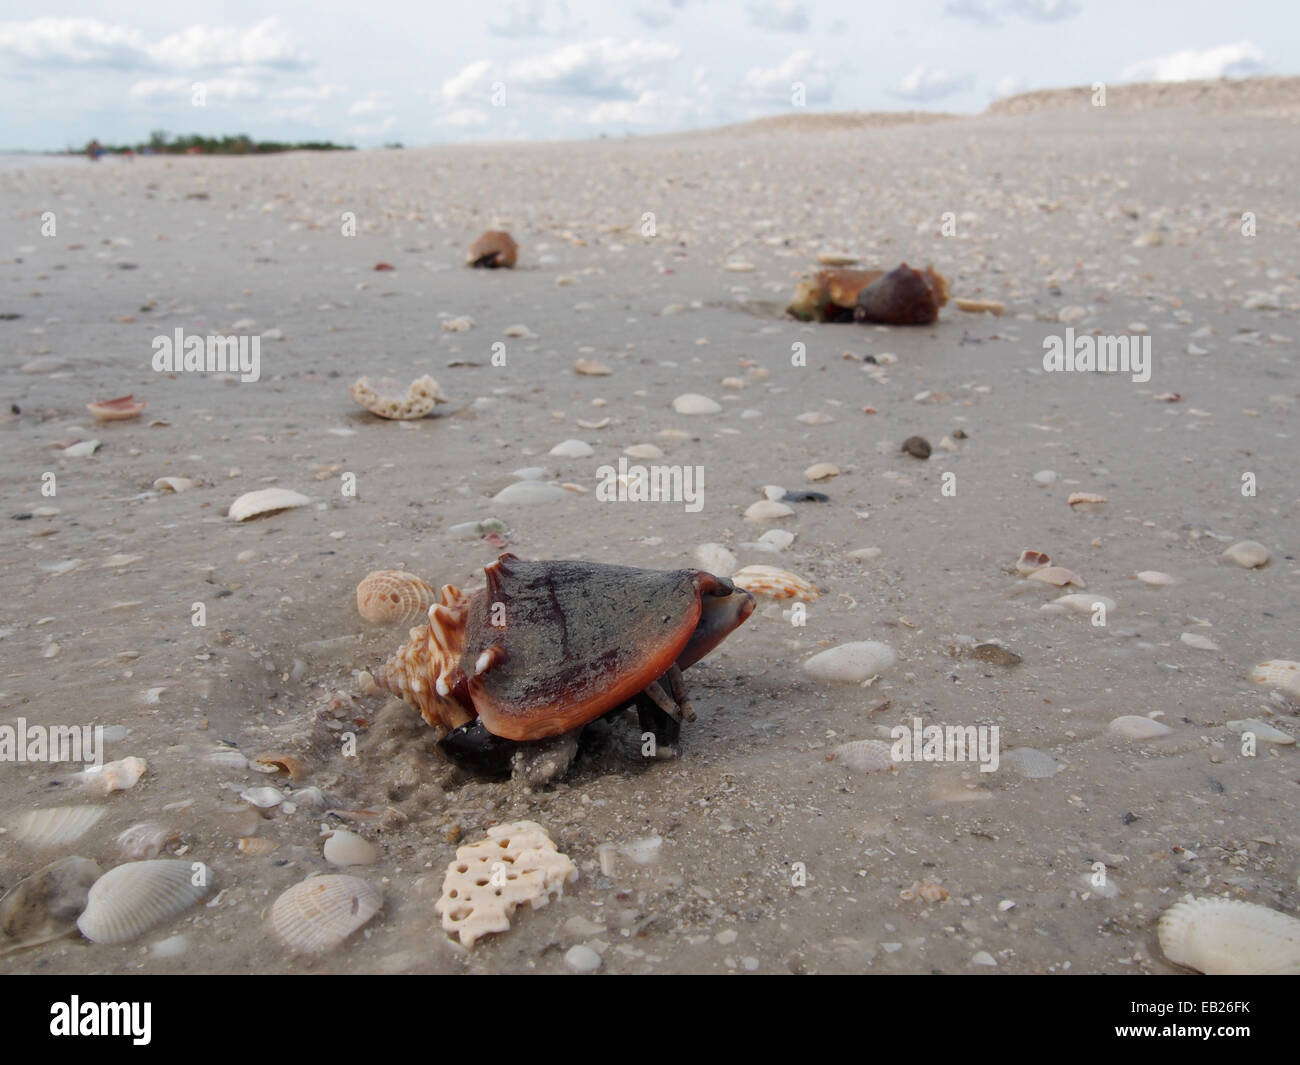 A live Fighting Conch crawls along the beach at Lovers Key State Park, Ft. Myers, Florida, USA, October 6, 2014, Stock Photo